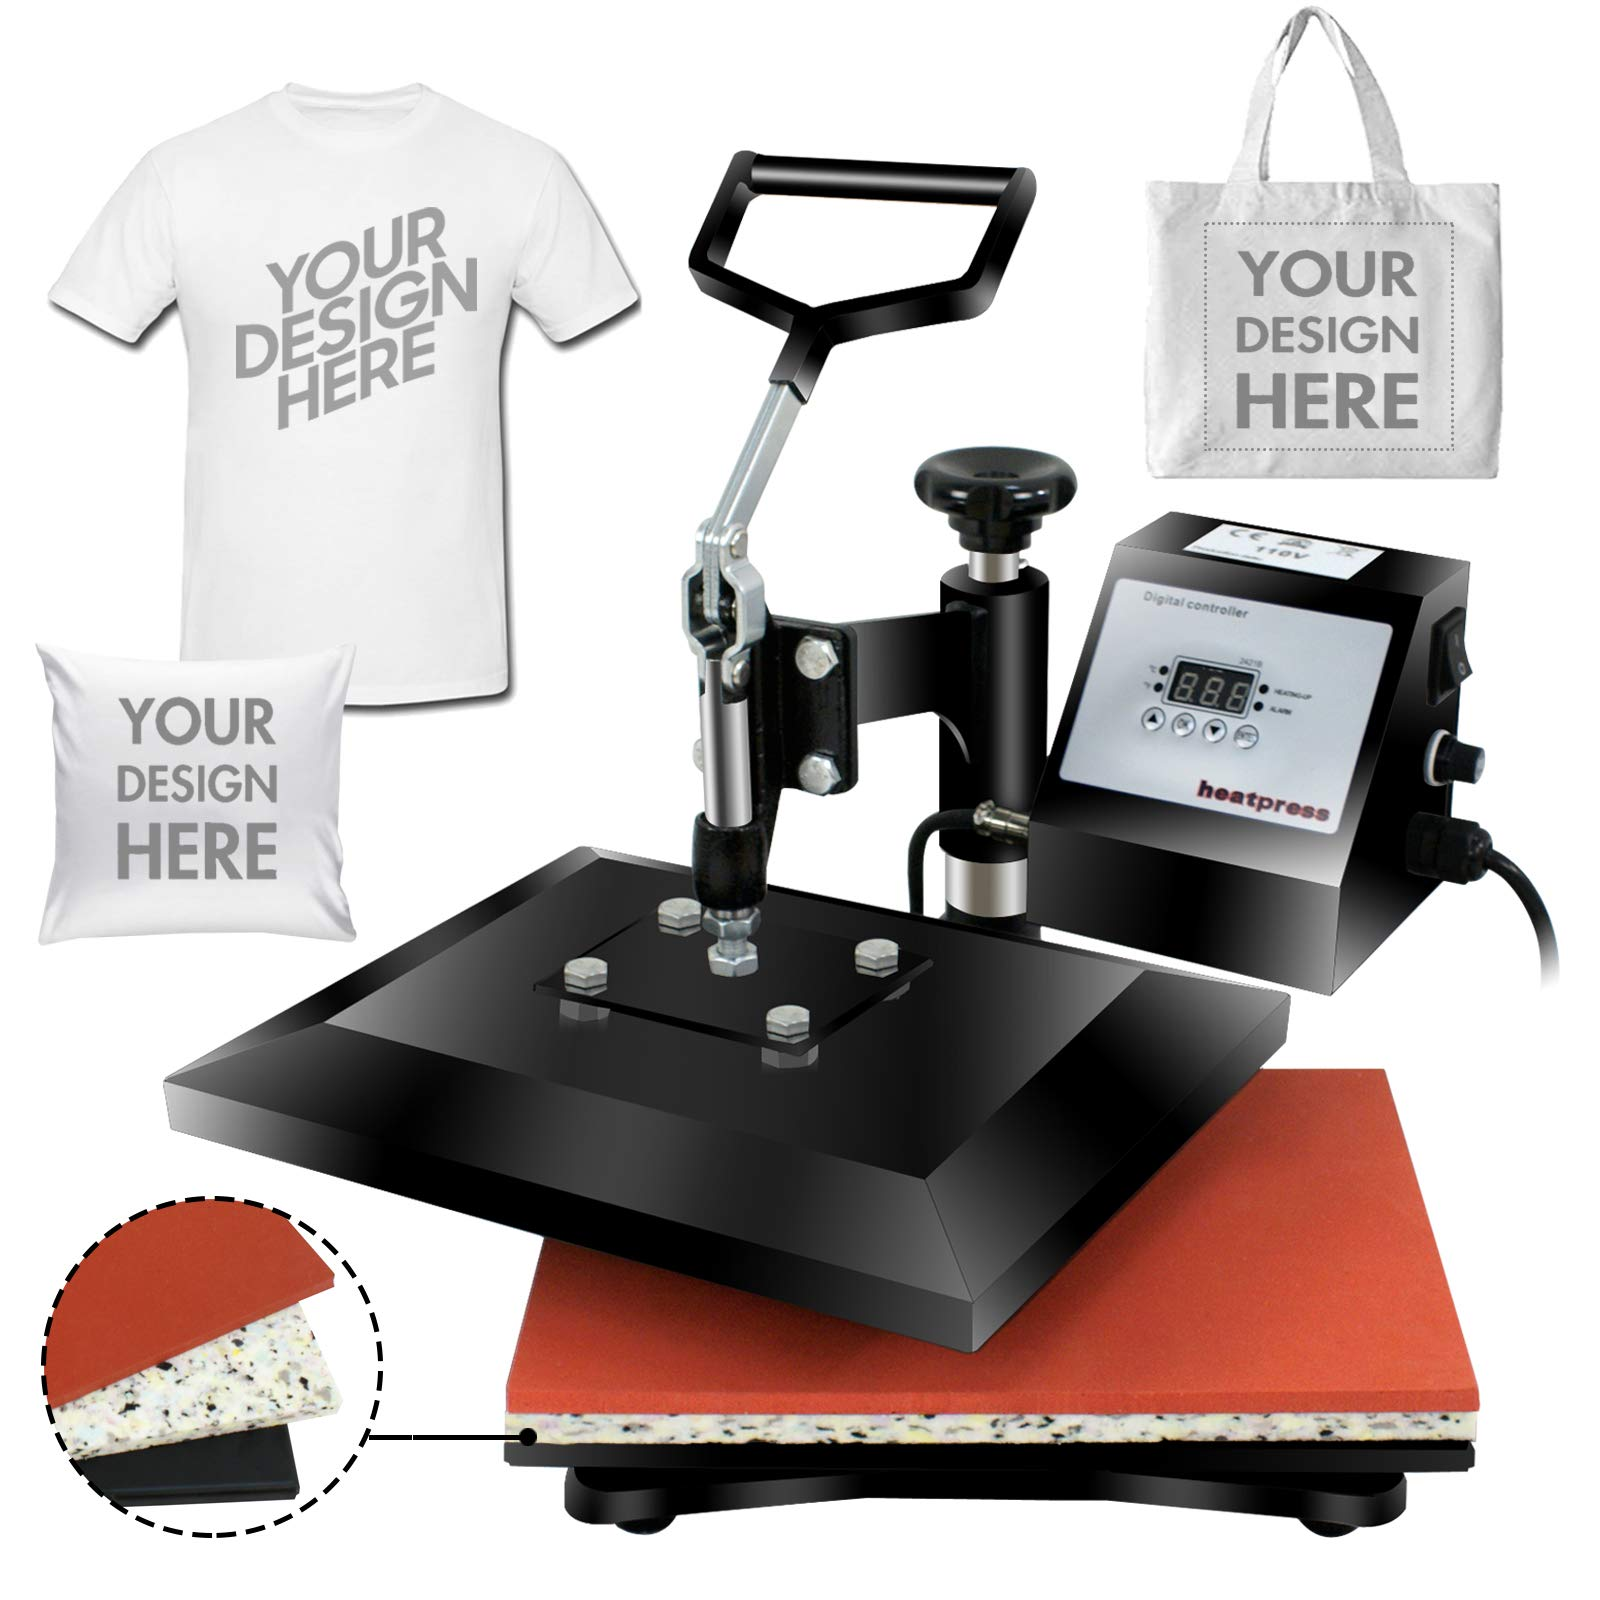 Super Deal PRO 12'' X 10'' Digital Swing Away Heat Press Clamshell Transfer Sublimation Machine by SUPER DEAL